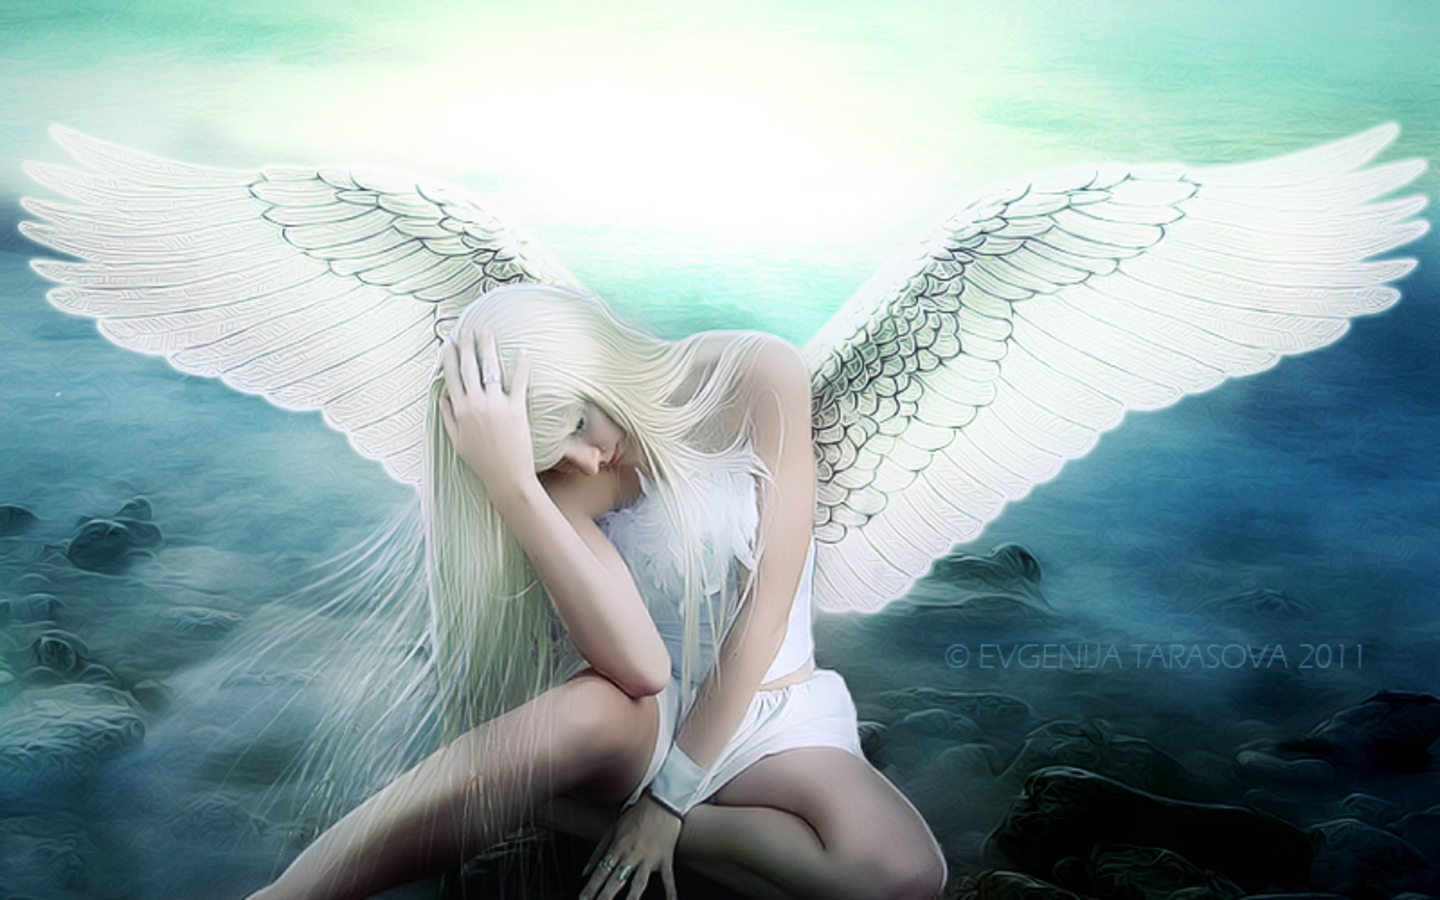 and the angel said to me �welcome to our world